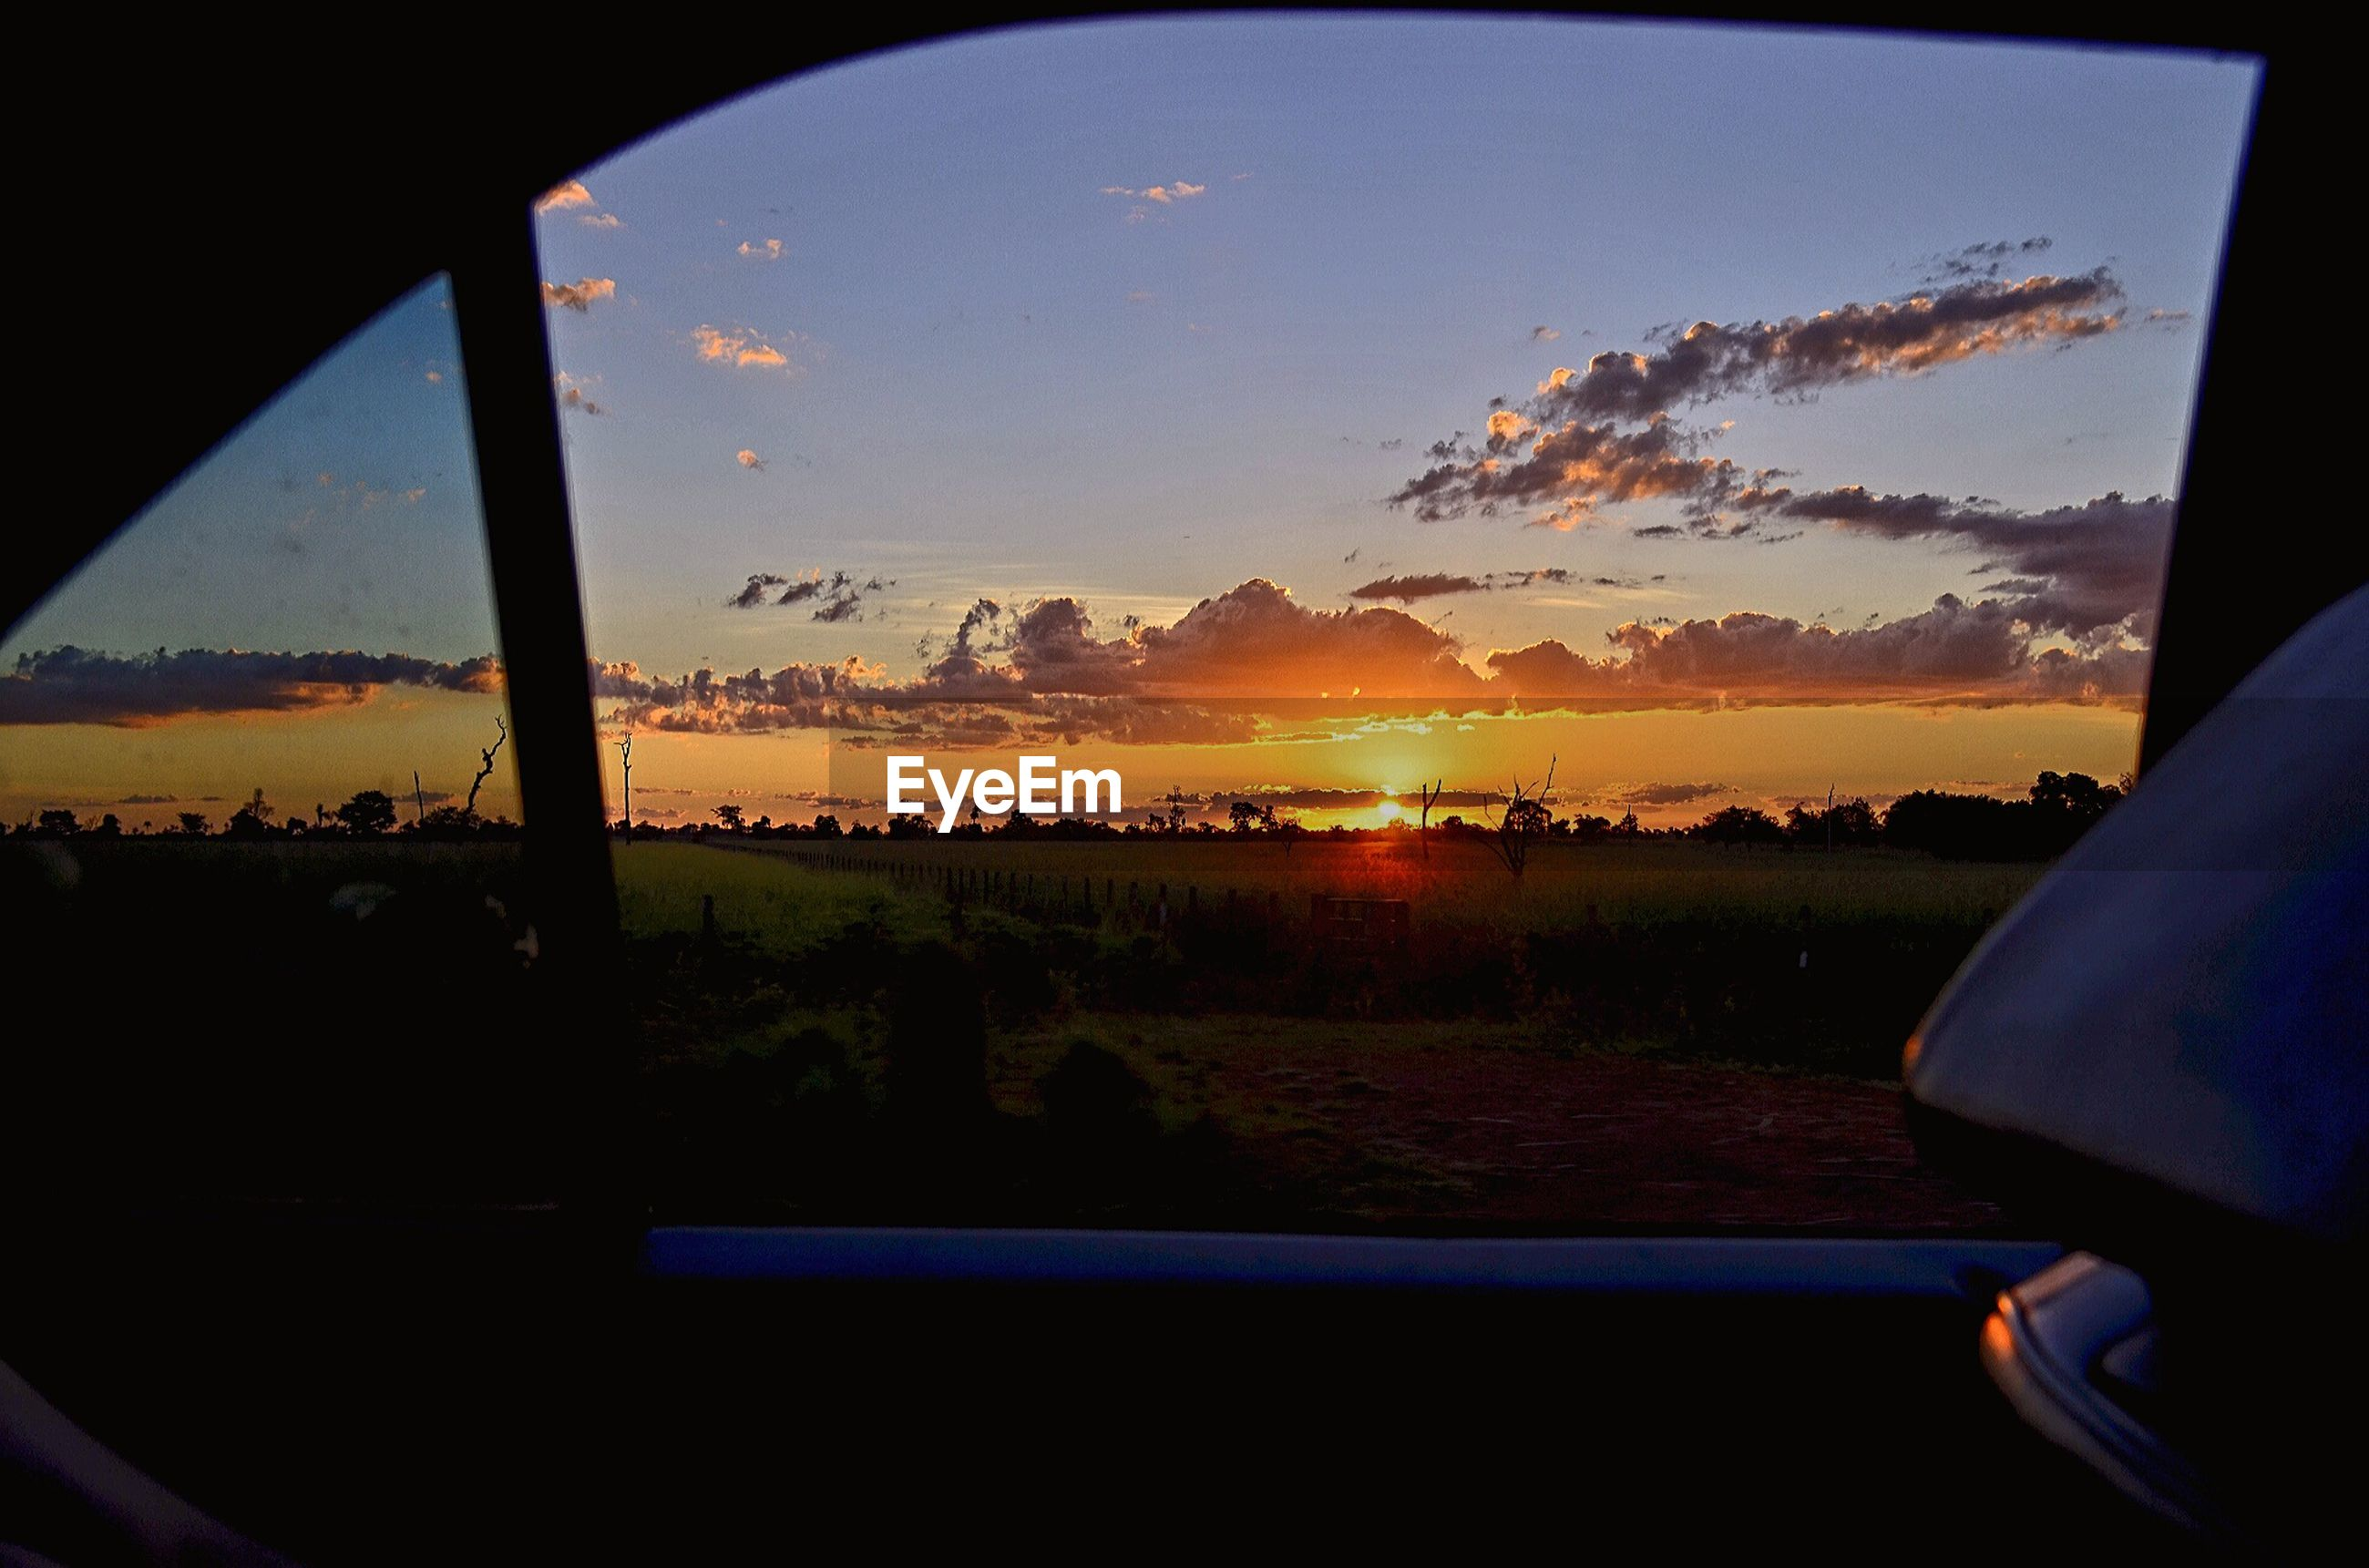 sunset, sky, silhouette, vehicle interior, scenics, window, landscape, sun, tree, transportation, beauty in nature, orange color, glass - material, tranquil scene, transparent, nature, tranquility, mode of transport, car, land vehicle